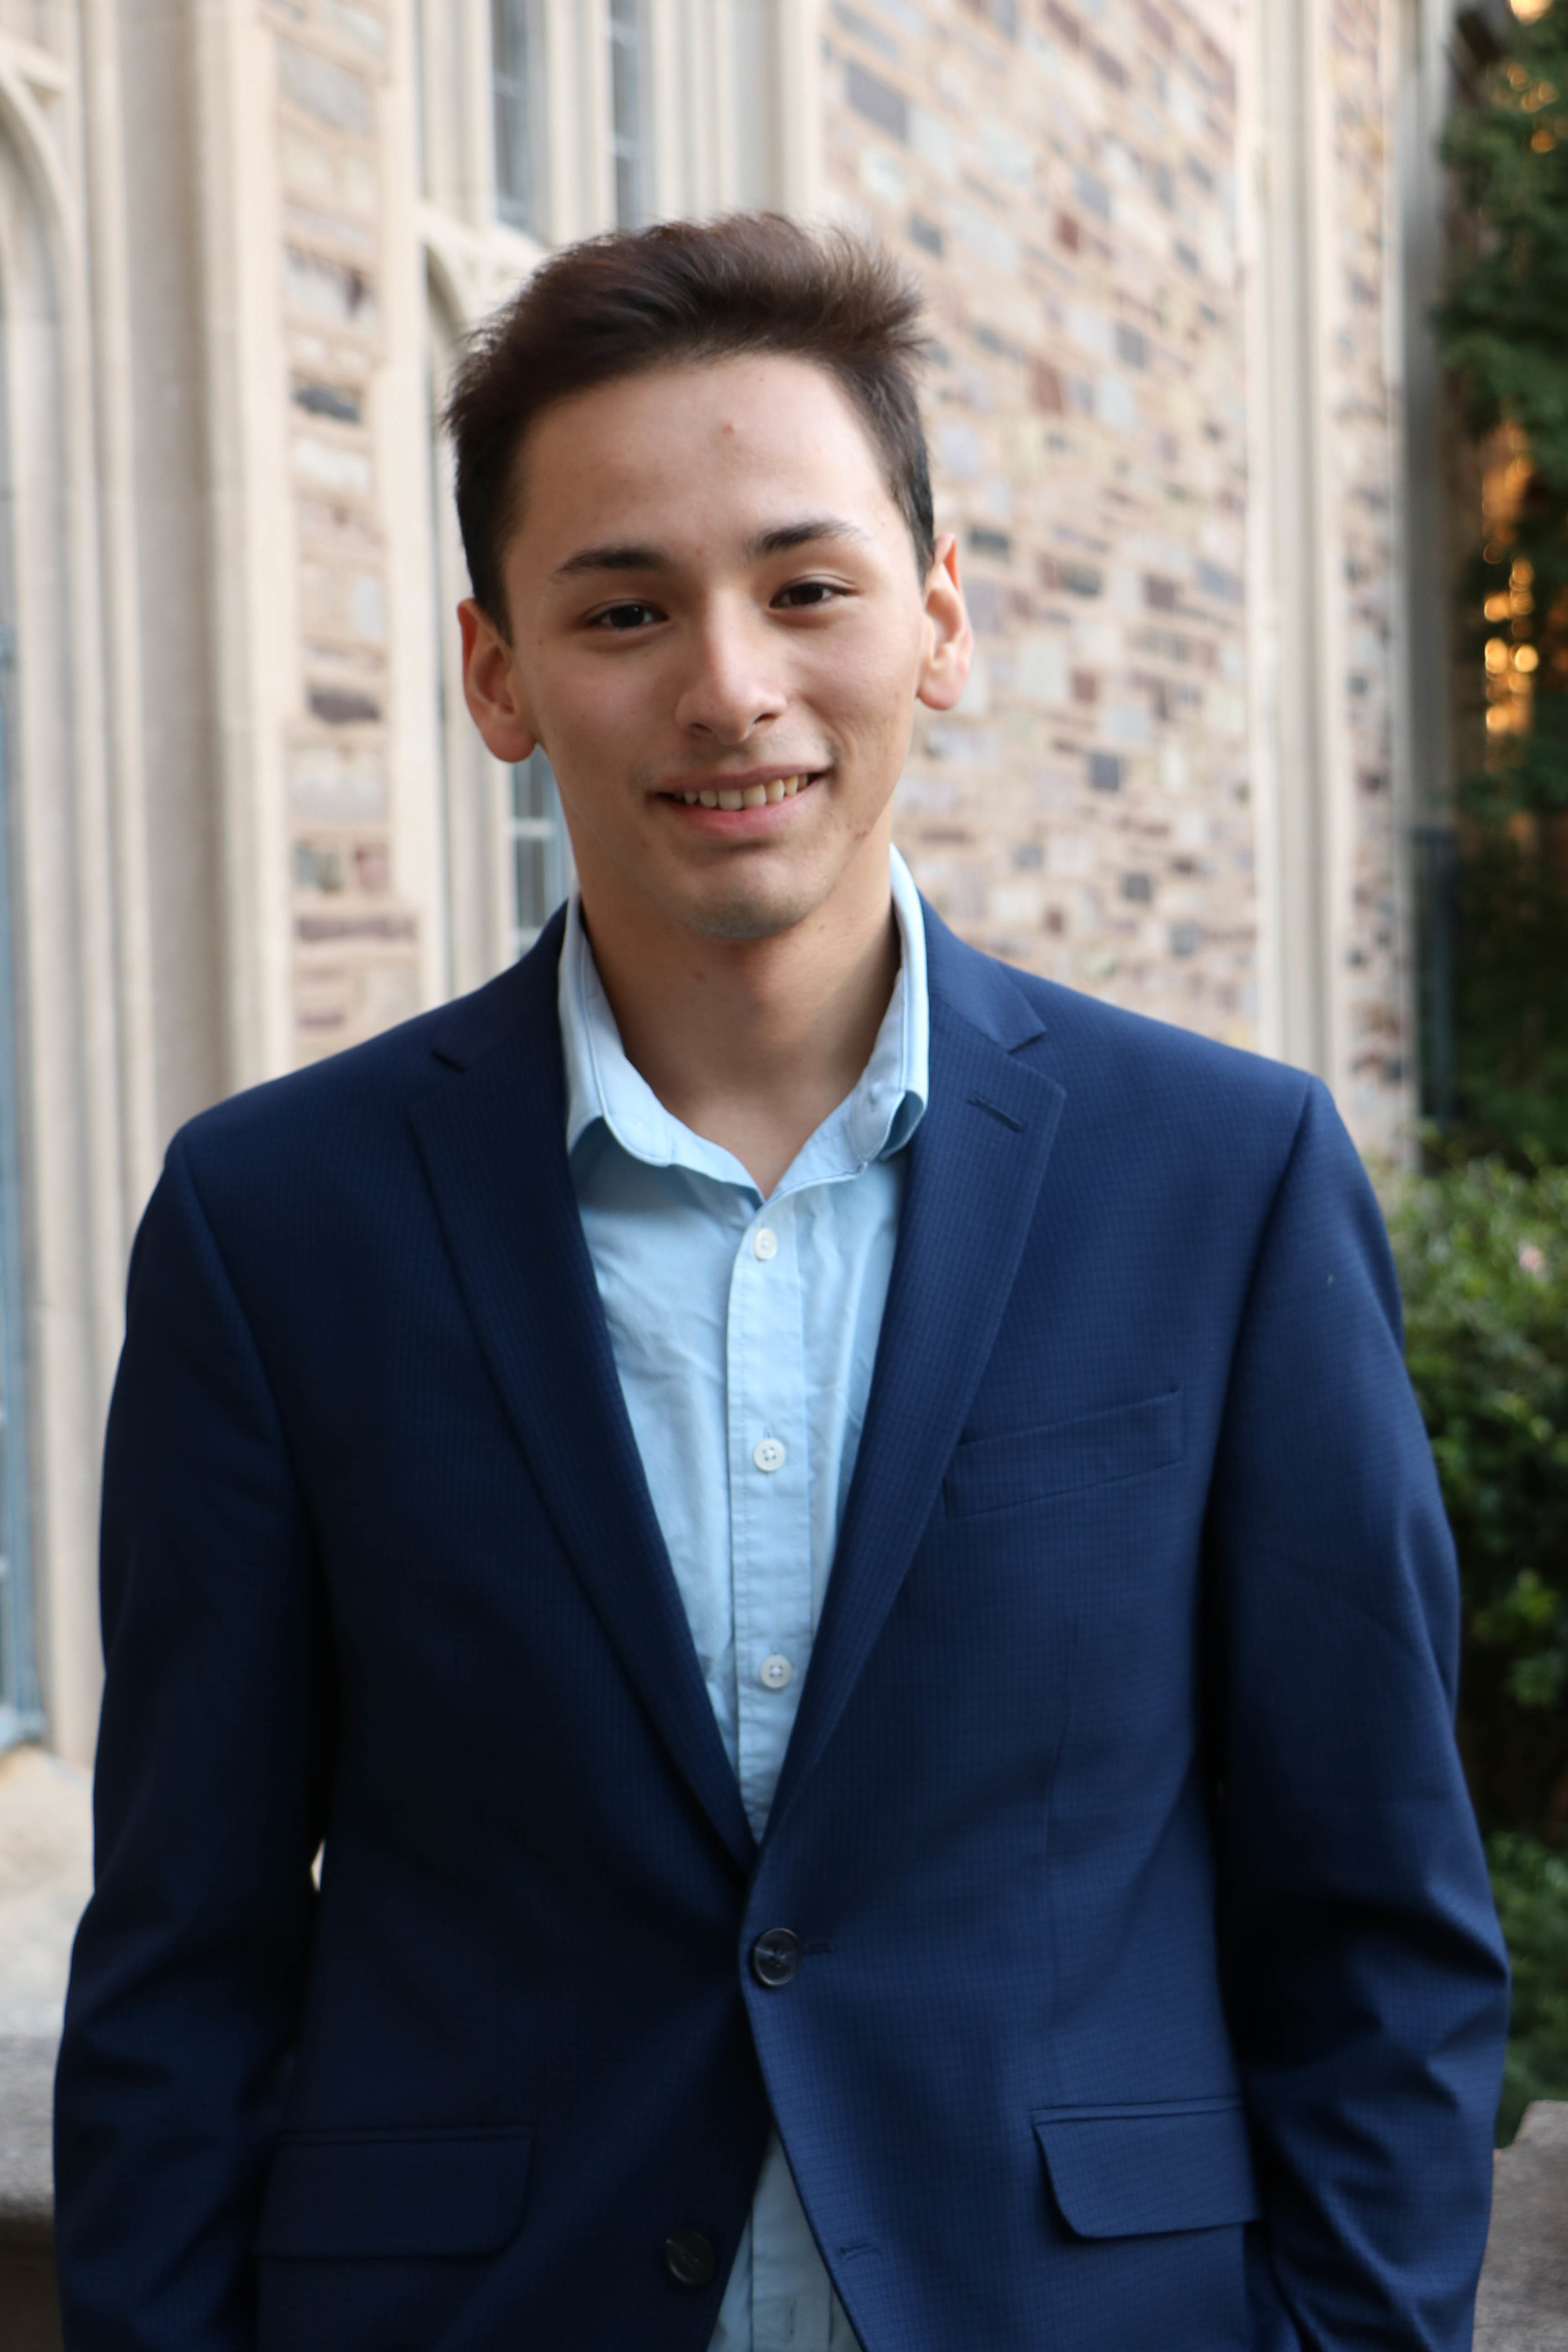 MATTHEW PARODI   Director of Career and Alumni Relations  Matthew is a senior in the Politics department with certificates in East Asian Studies and Statistics and Machine Learning. In the past three years, Matthew has spent 11 months studying, working, and living in Mandarin-speaking East Asia. Last summer, he was a research intern in Dunhuang, Gansu at the Mogao Caves, a UNESCO World Heritage site. He also studied and interned at the Tsinghua University Department of International Relations. Outside of PUCC, Matthew is served as the Administrative Vice-President of the Princeton Debate Panel and a research assistant for the Department of Politics and Center on Contemporary China.